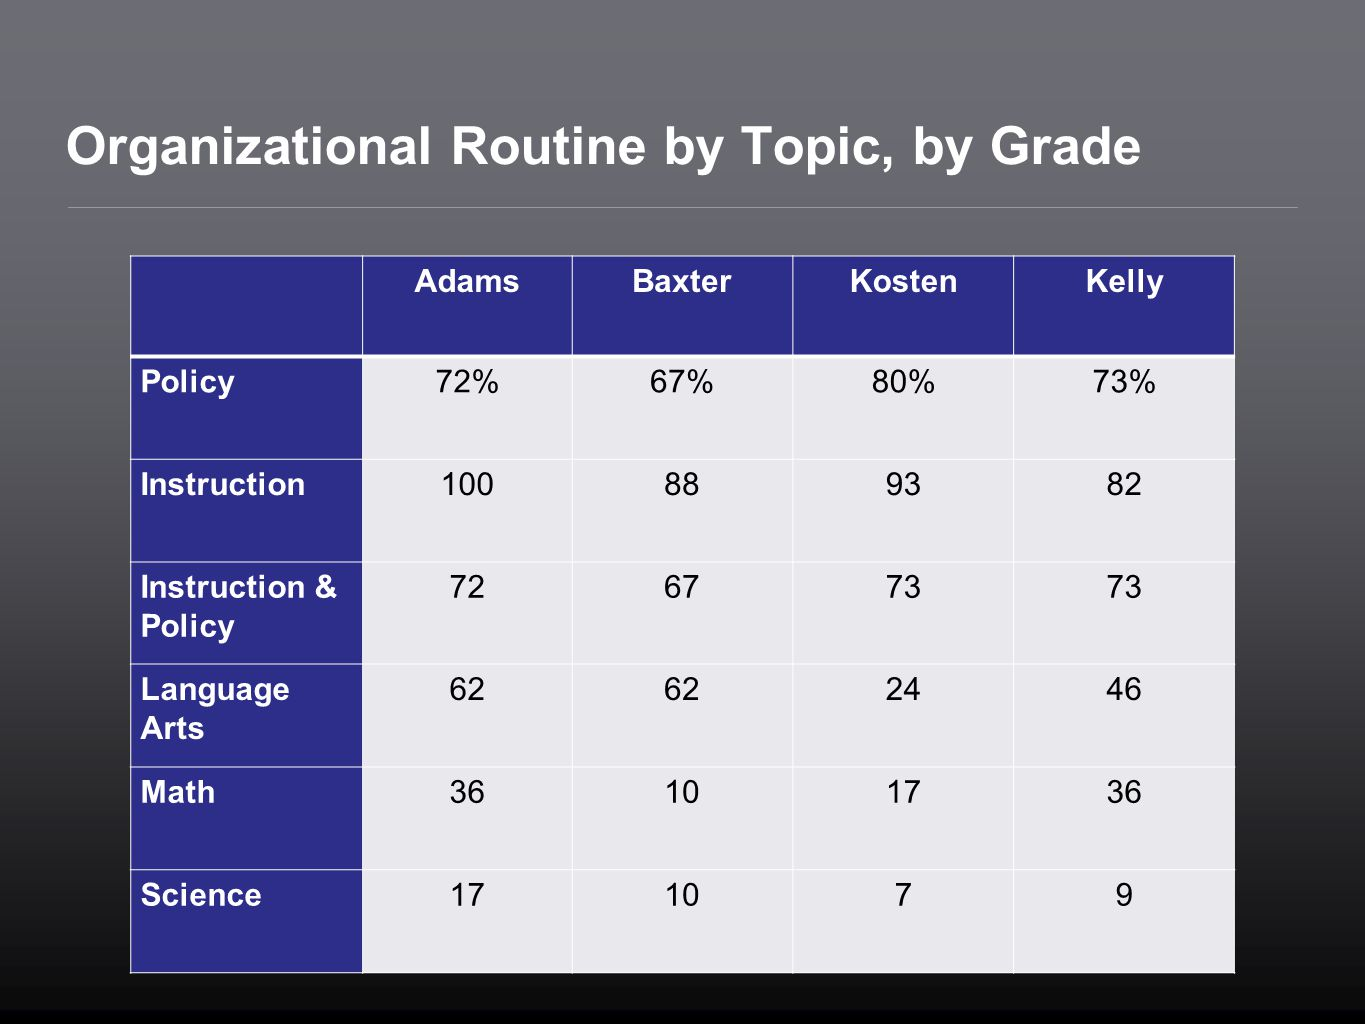 Organizational Routine by Topic, by Grade